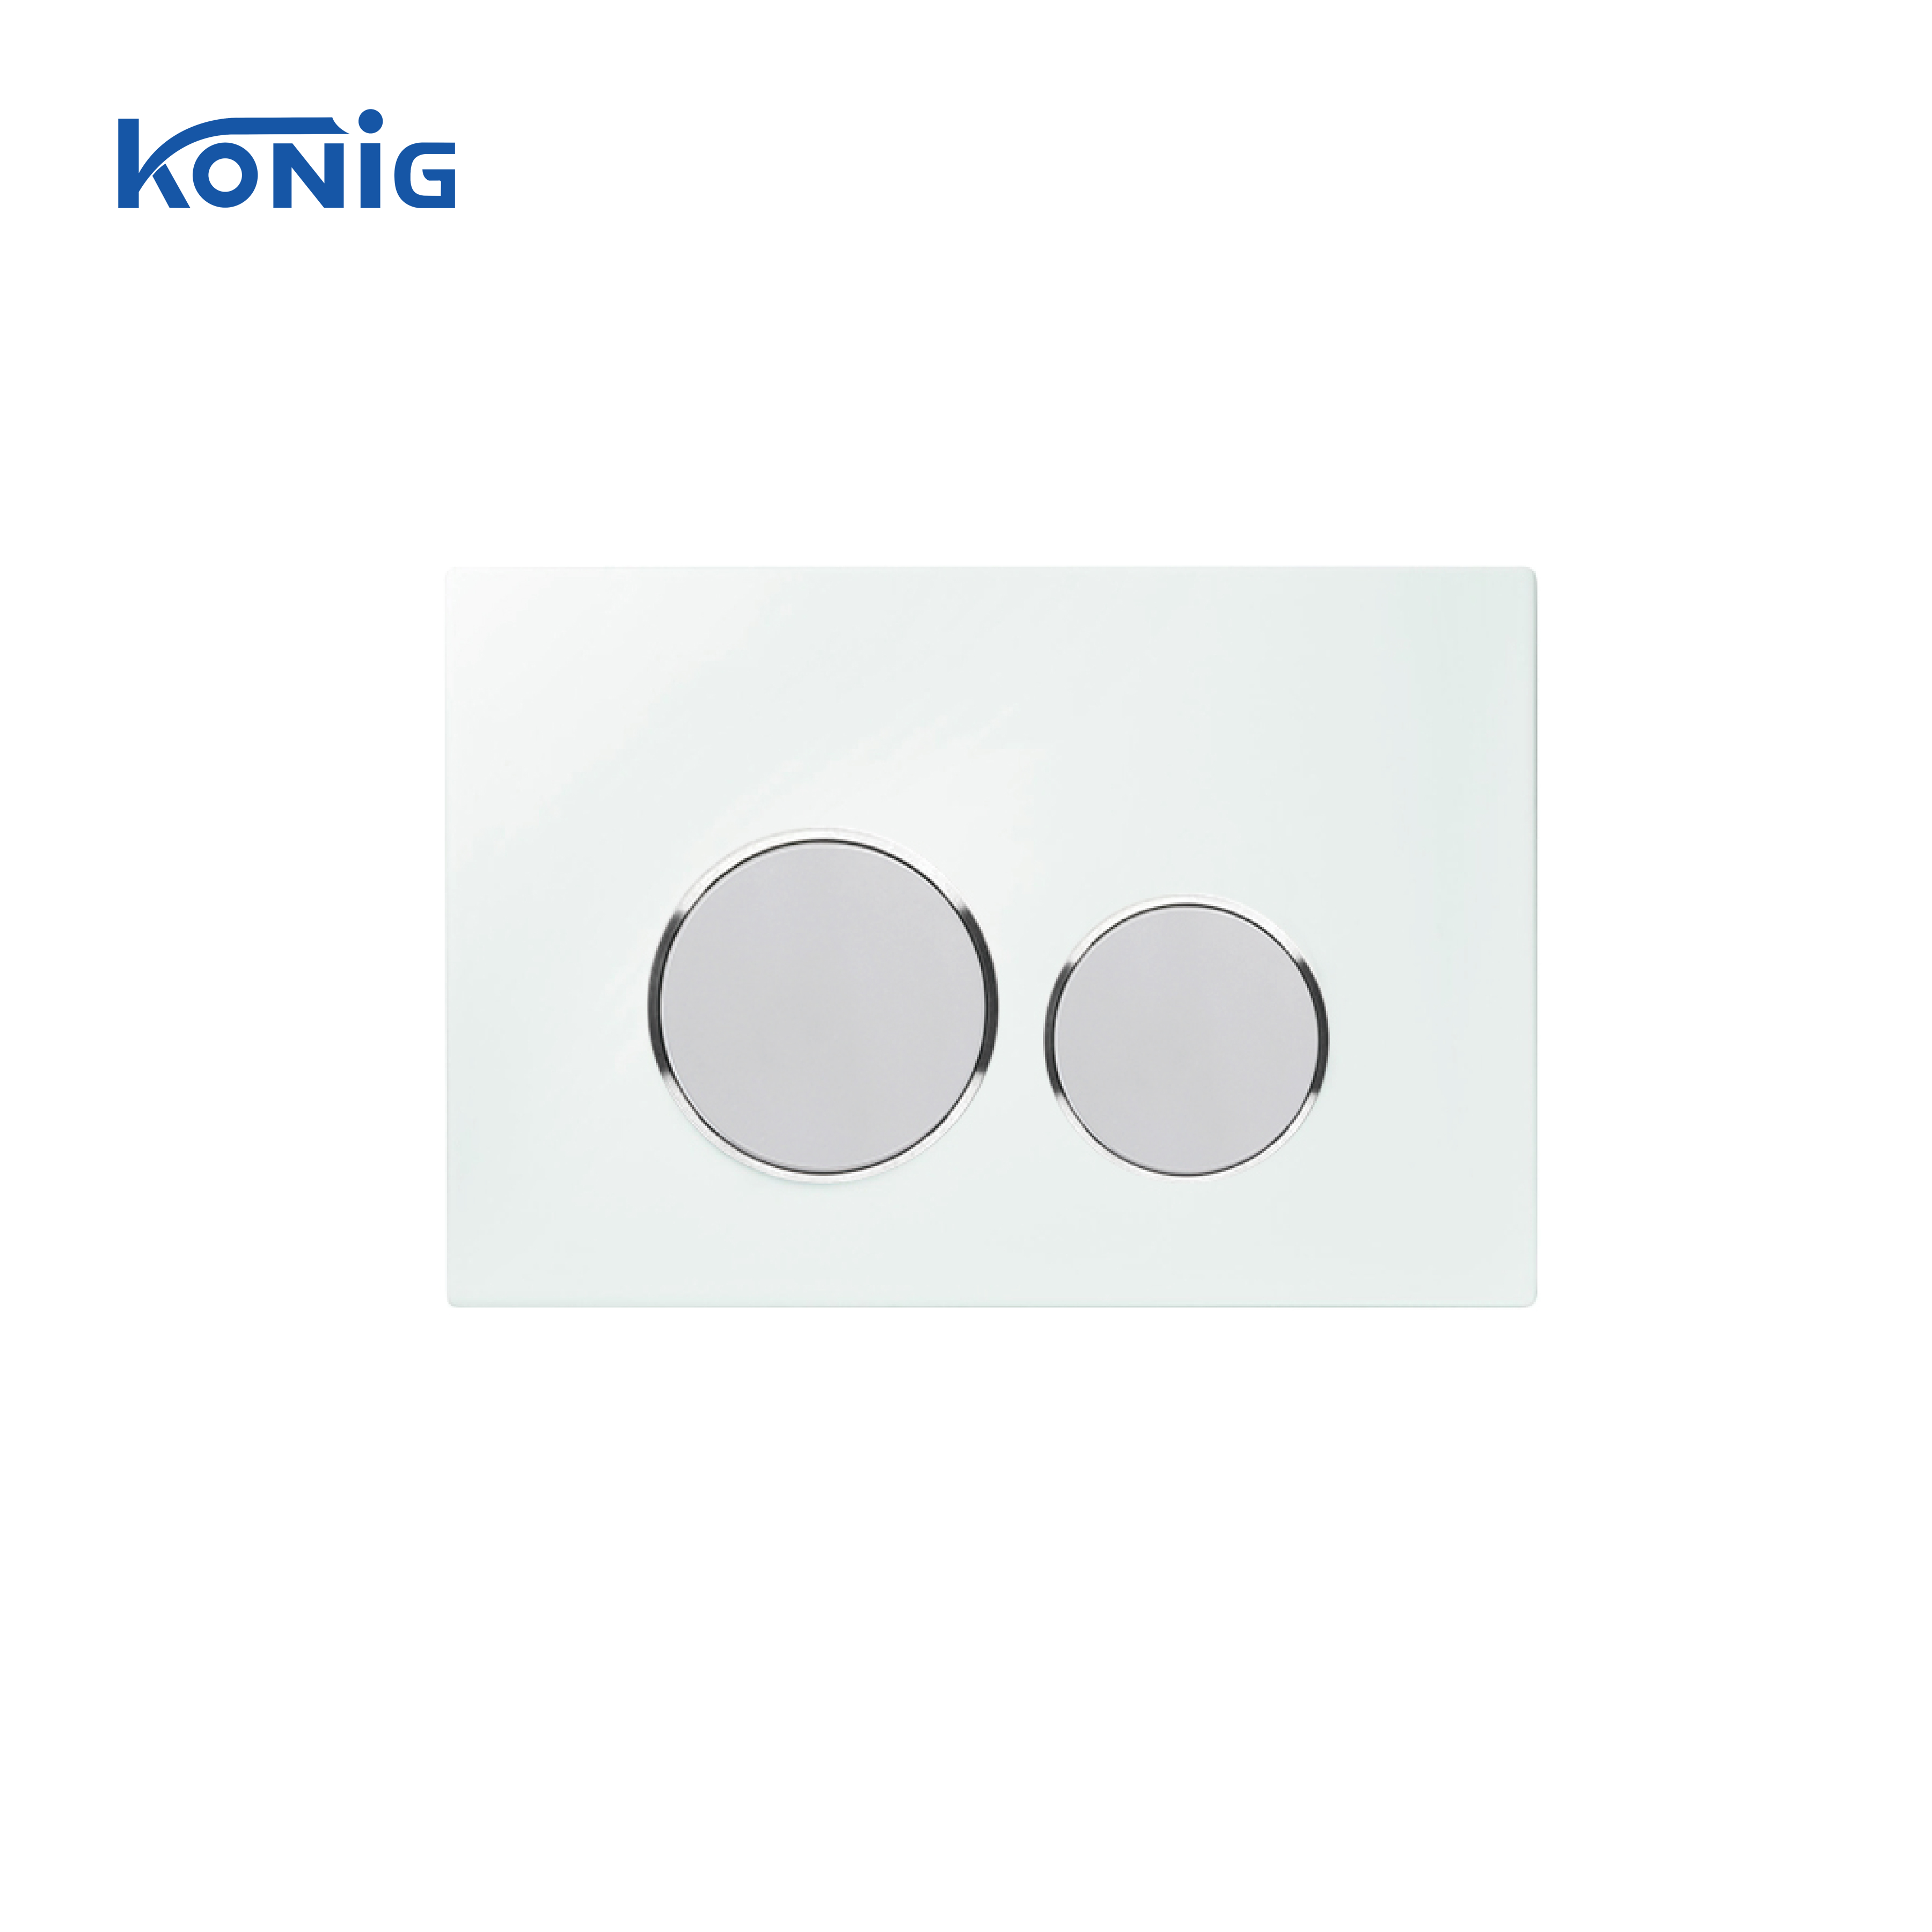 Tempered Glass Golden color Dual Flush Round Button Control Panel can match Geberit cistern Concealed Cistern Flush Plate